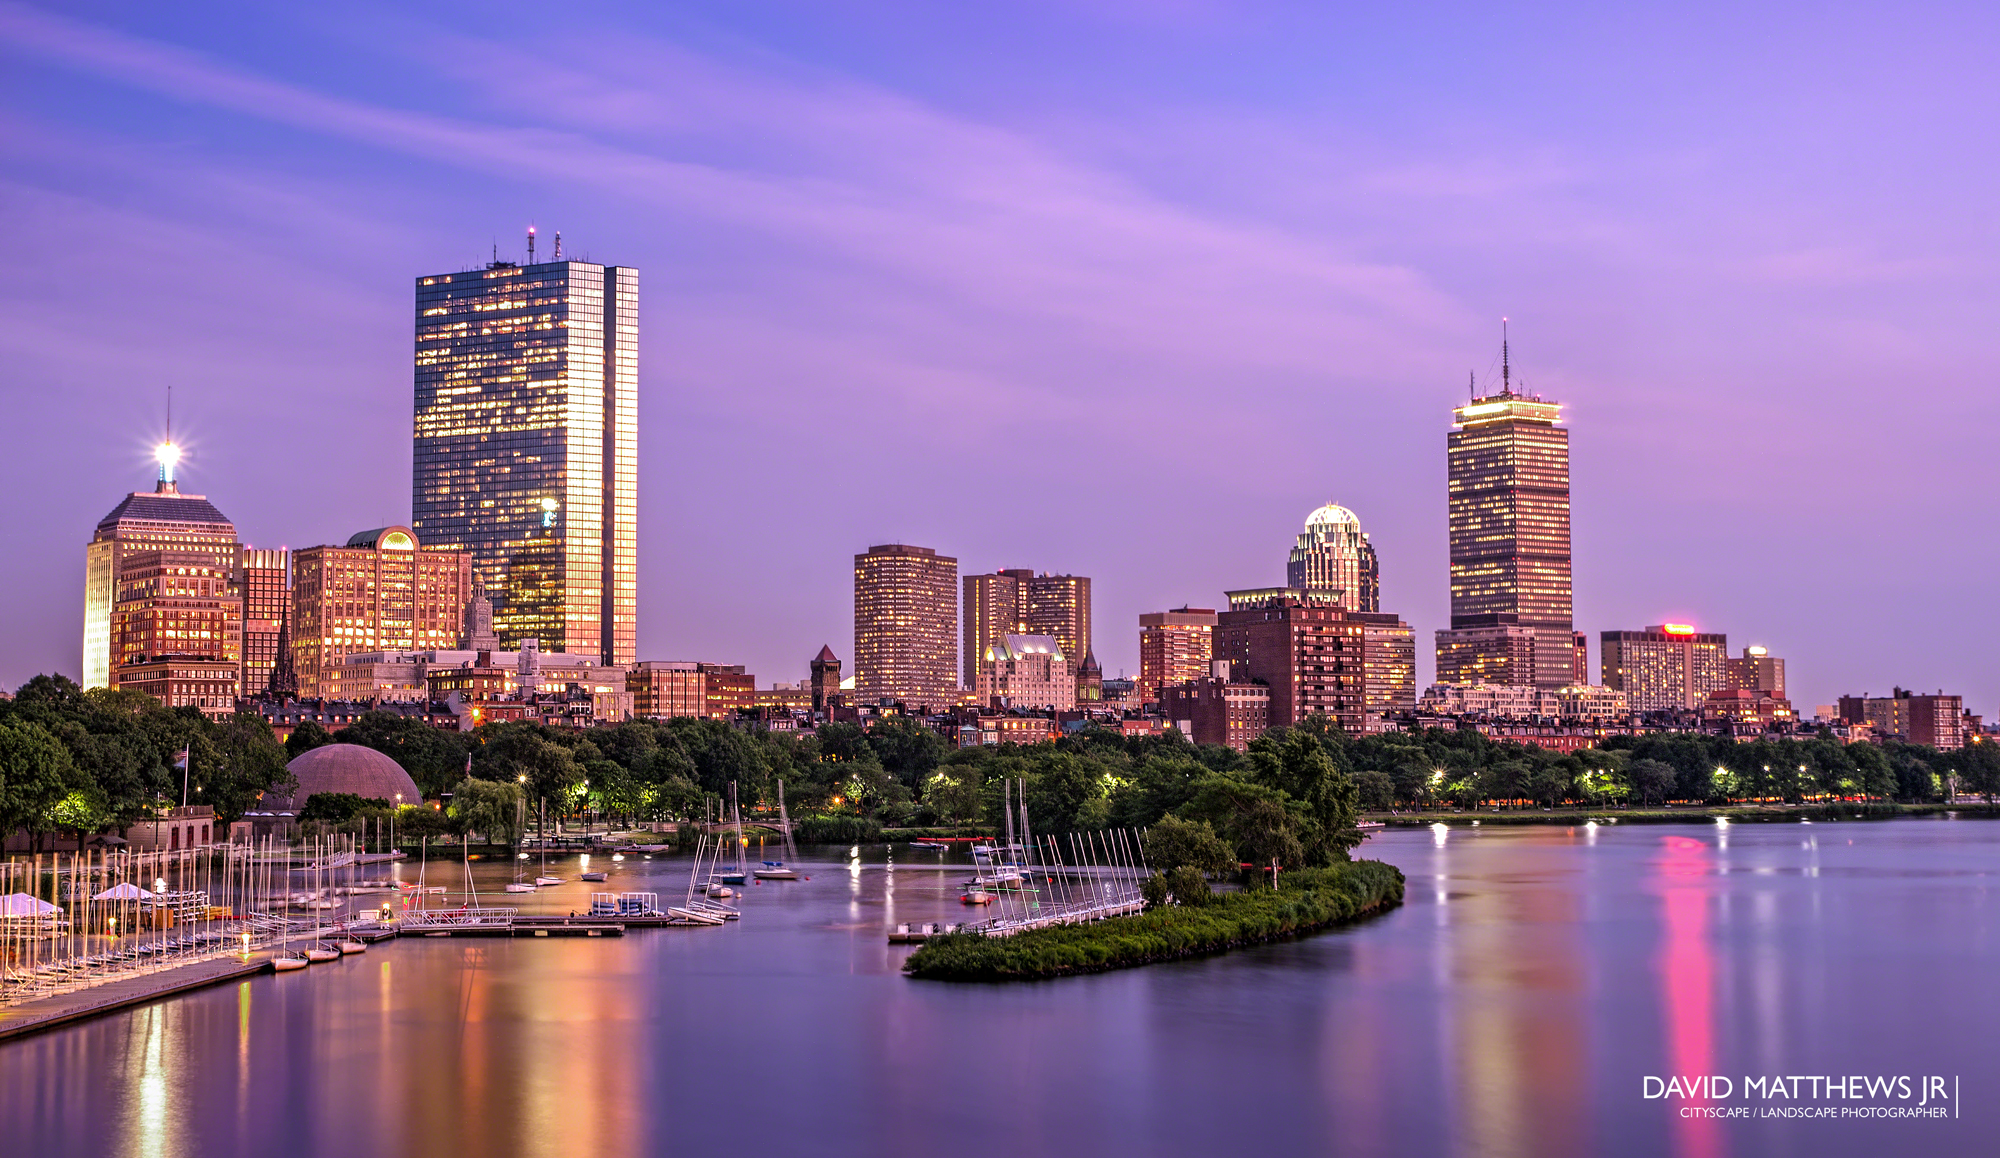 Best Colleges In Boston >> 5 Great Spots to Shoot the Boston Skyline | Camayah Photography